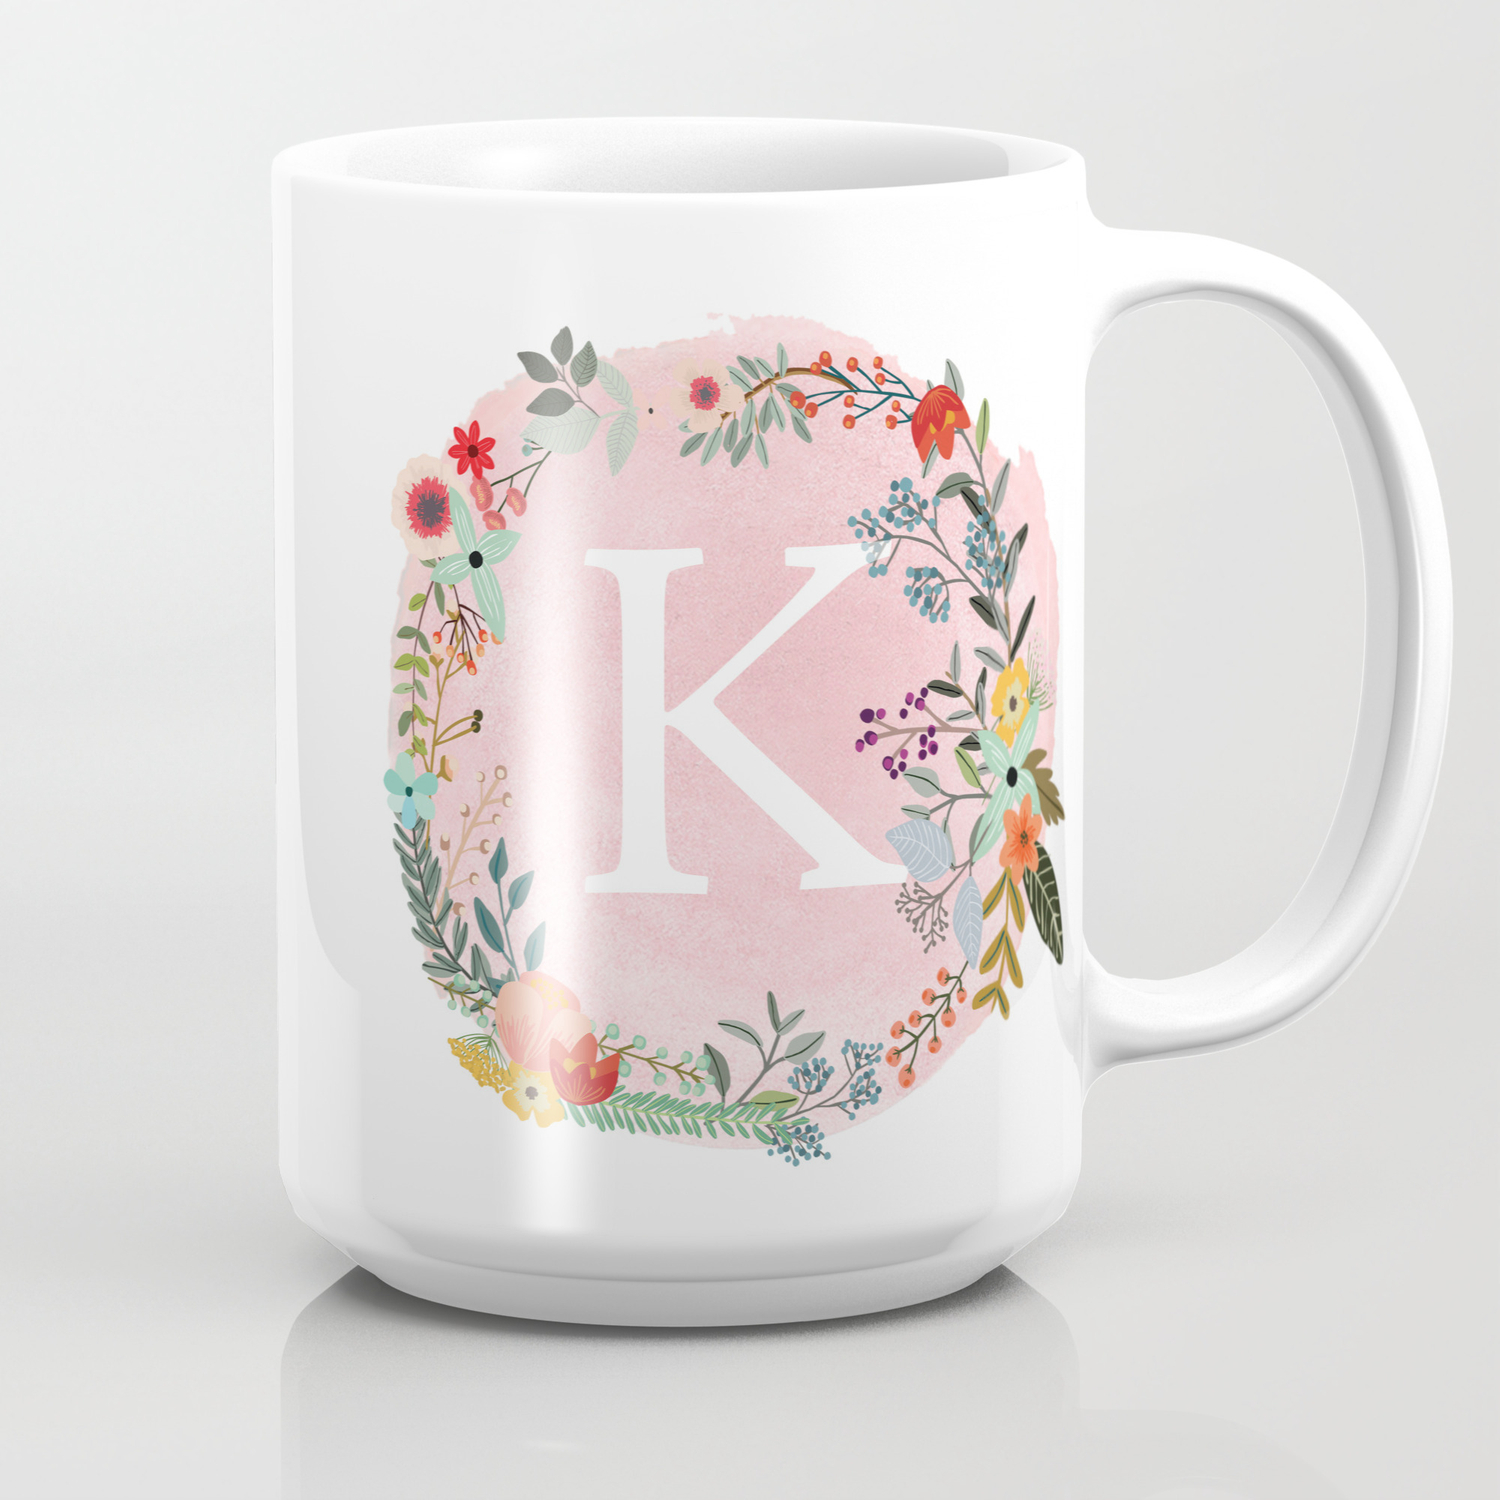 Flower Wreath With Personalized Monogram Initial Letter K On Pink Watercolor Paper Texture Artwork Coffee Mug By Aba2life Society6